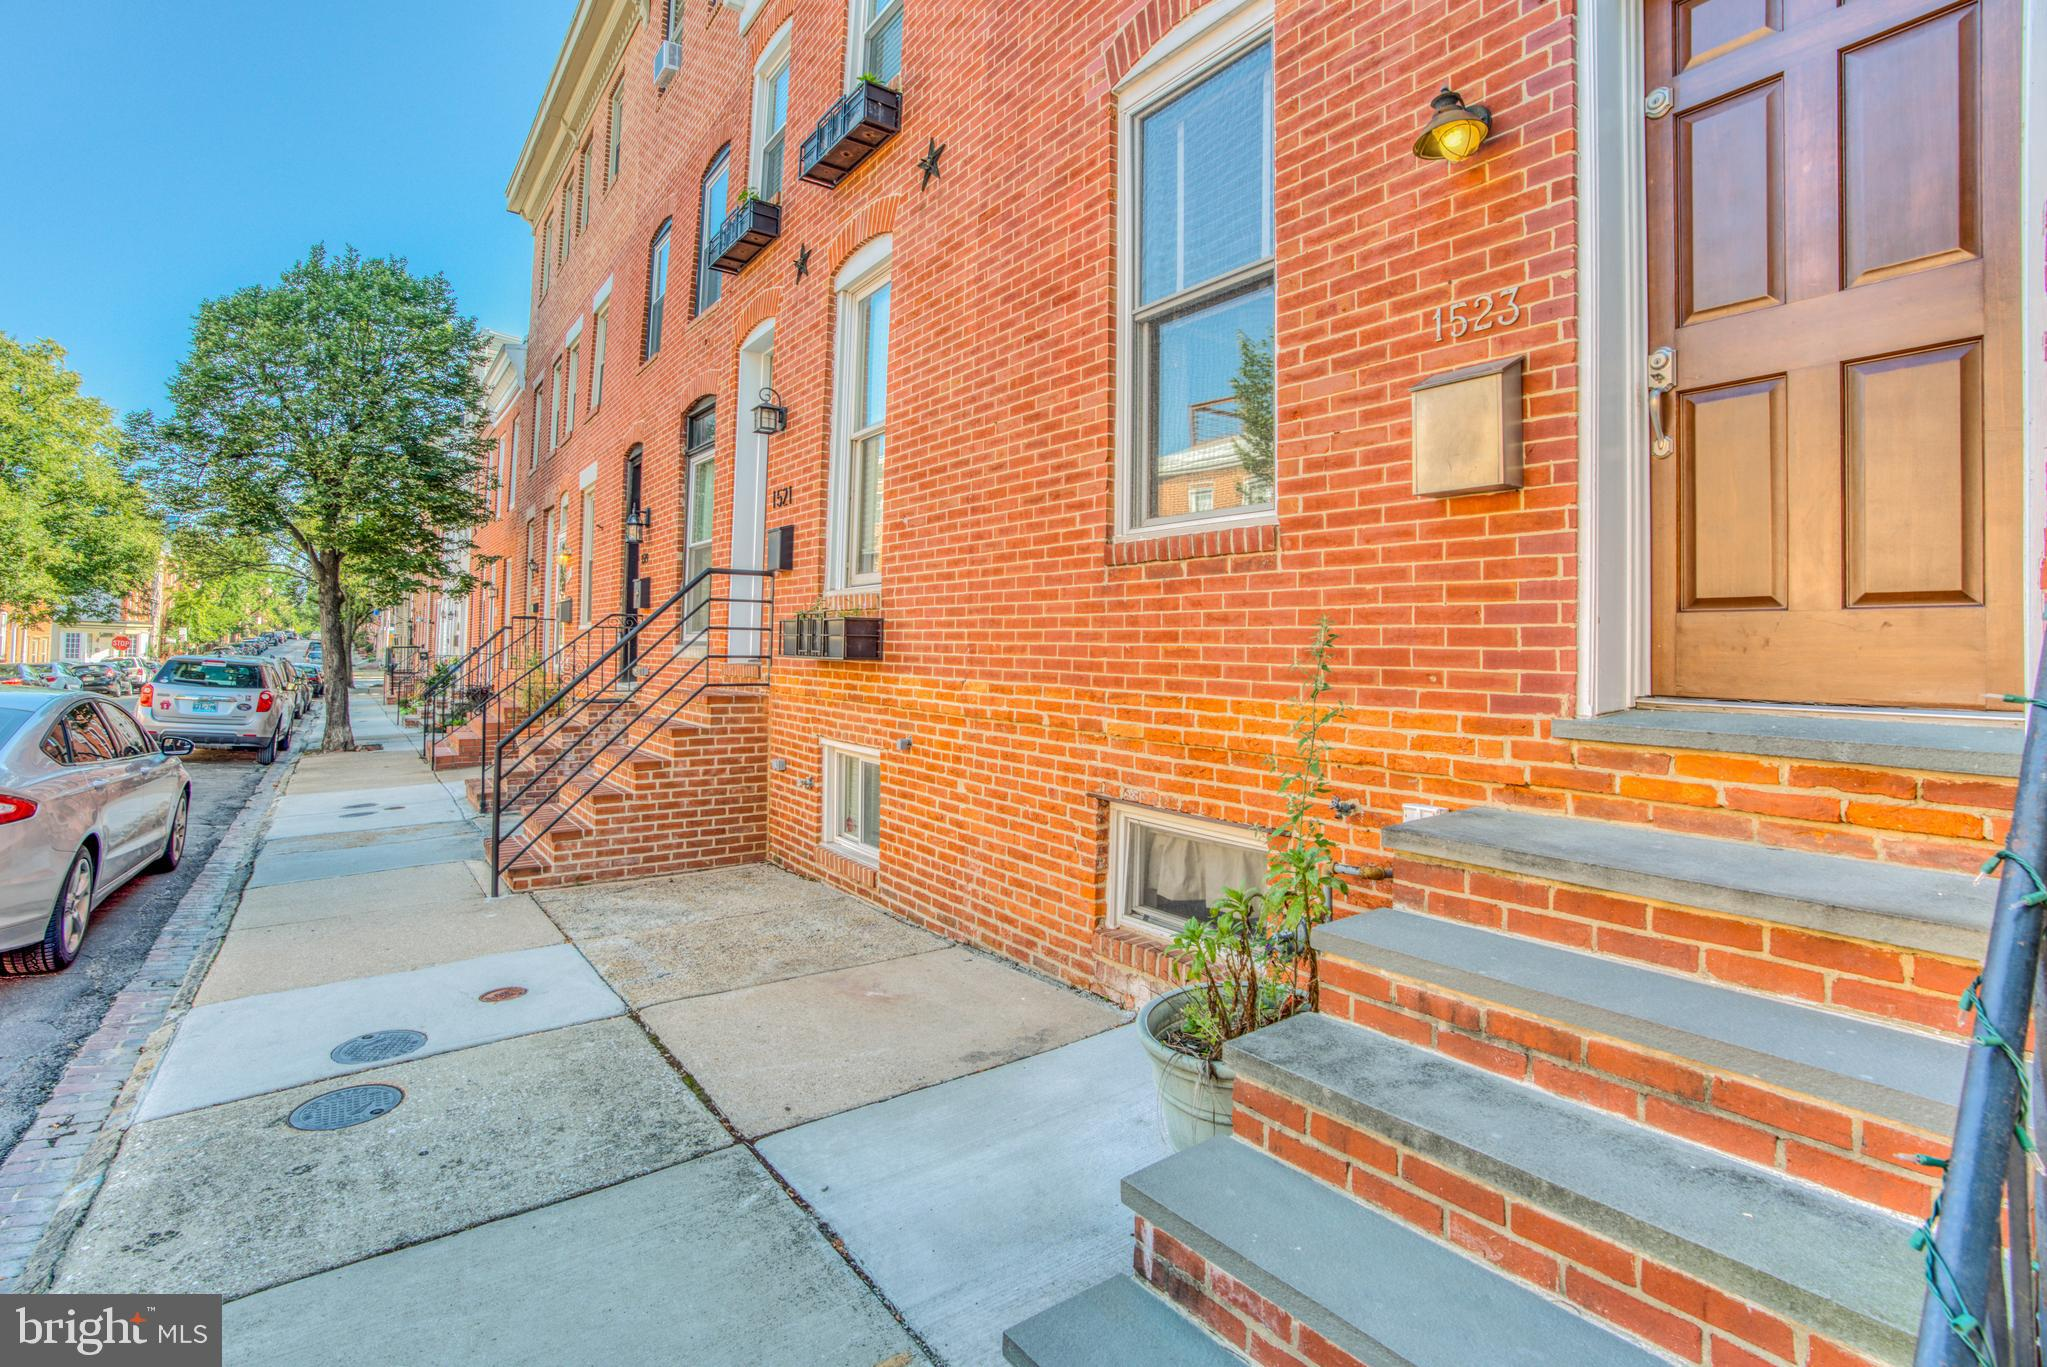 1523 William St, Baltimore, MD, 21230